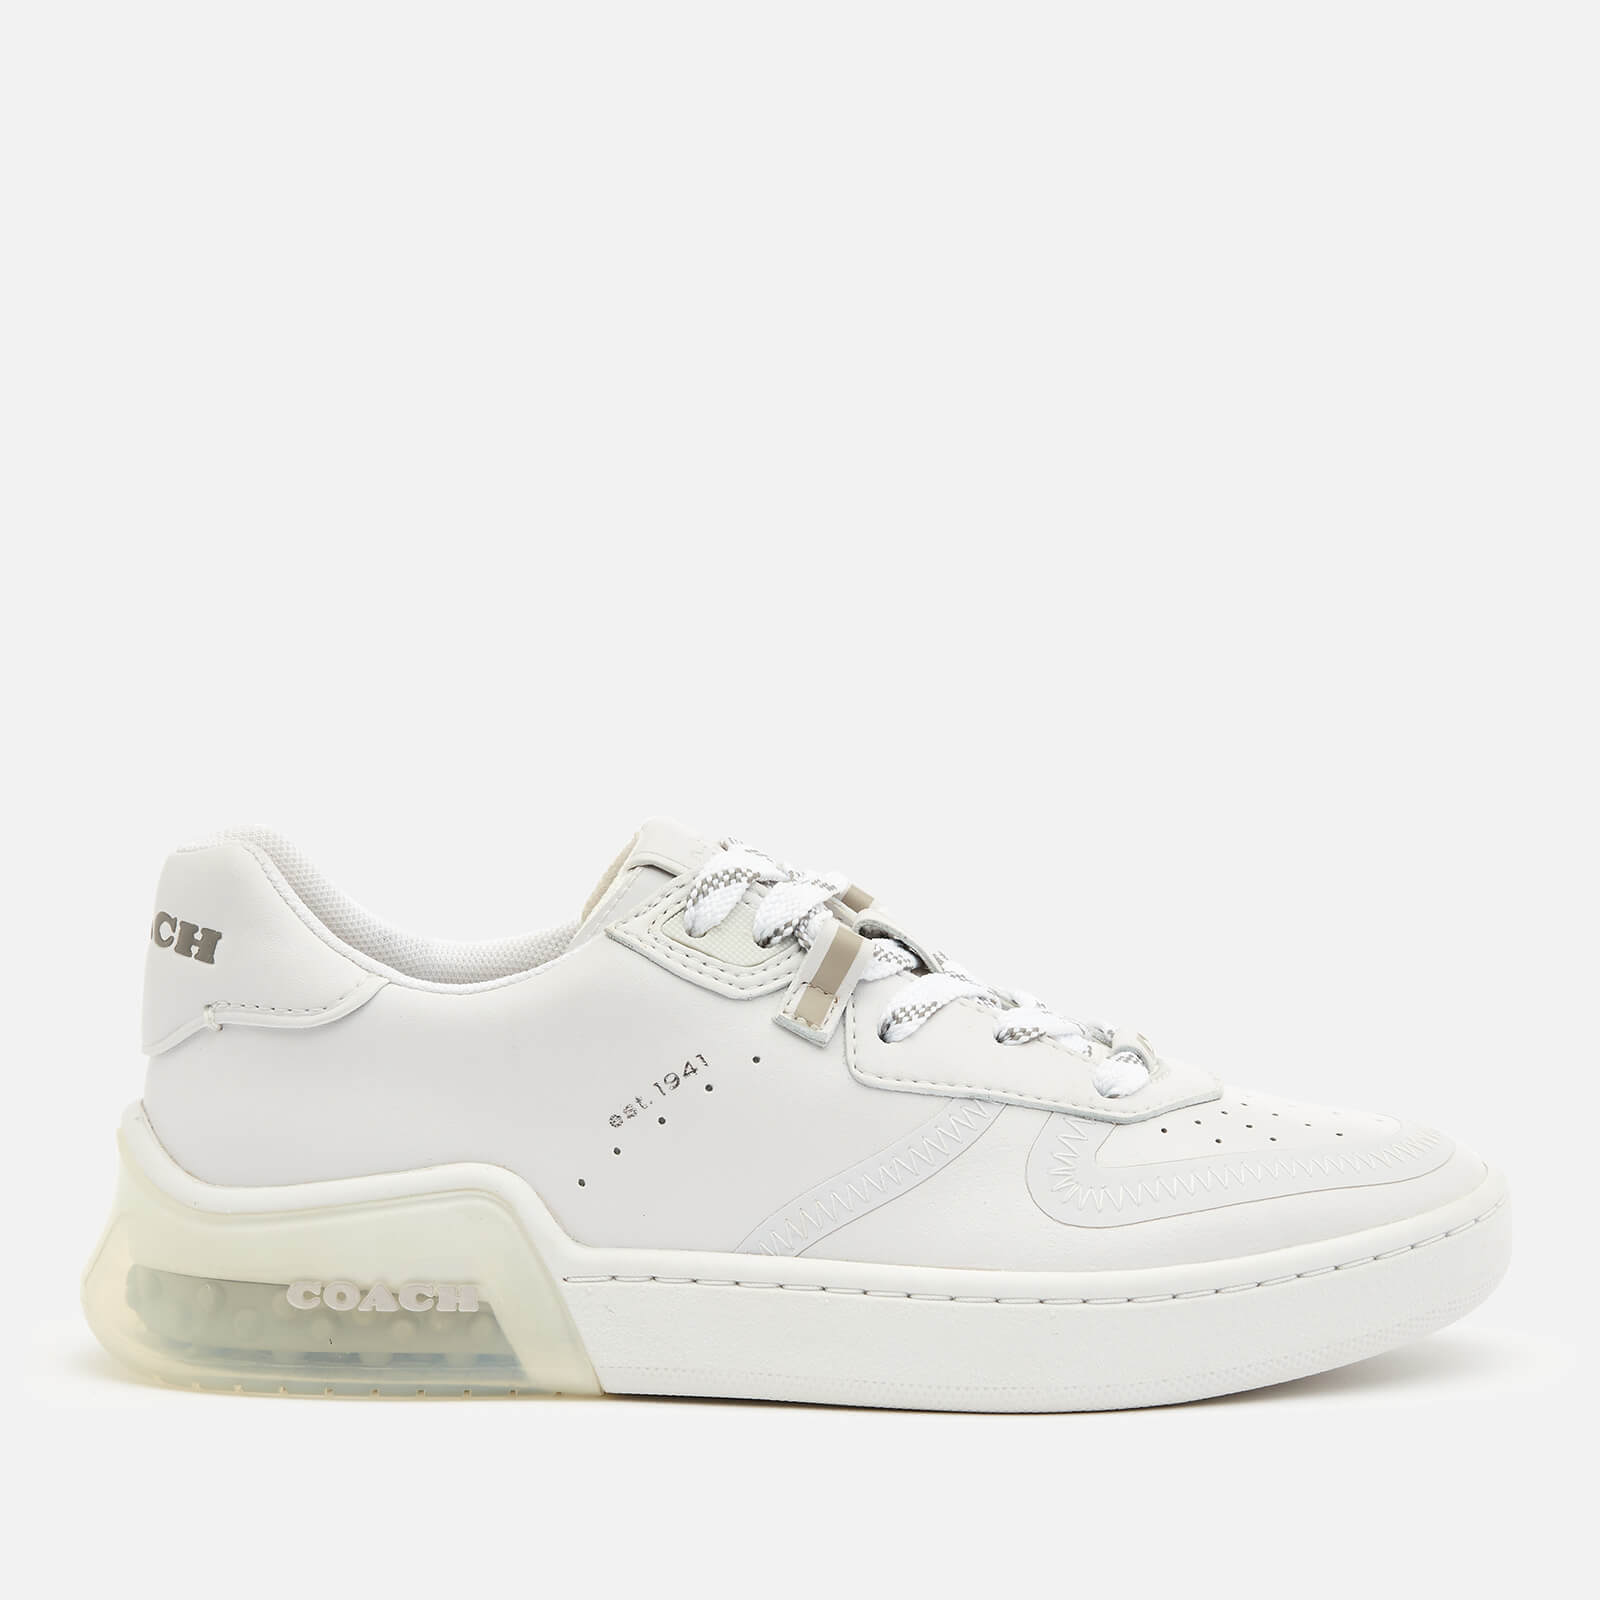 Coach Women's Citysole Suede/Leather Court Trainers - Optic White - UK 8